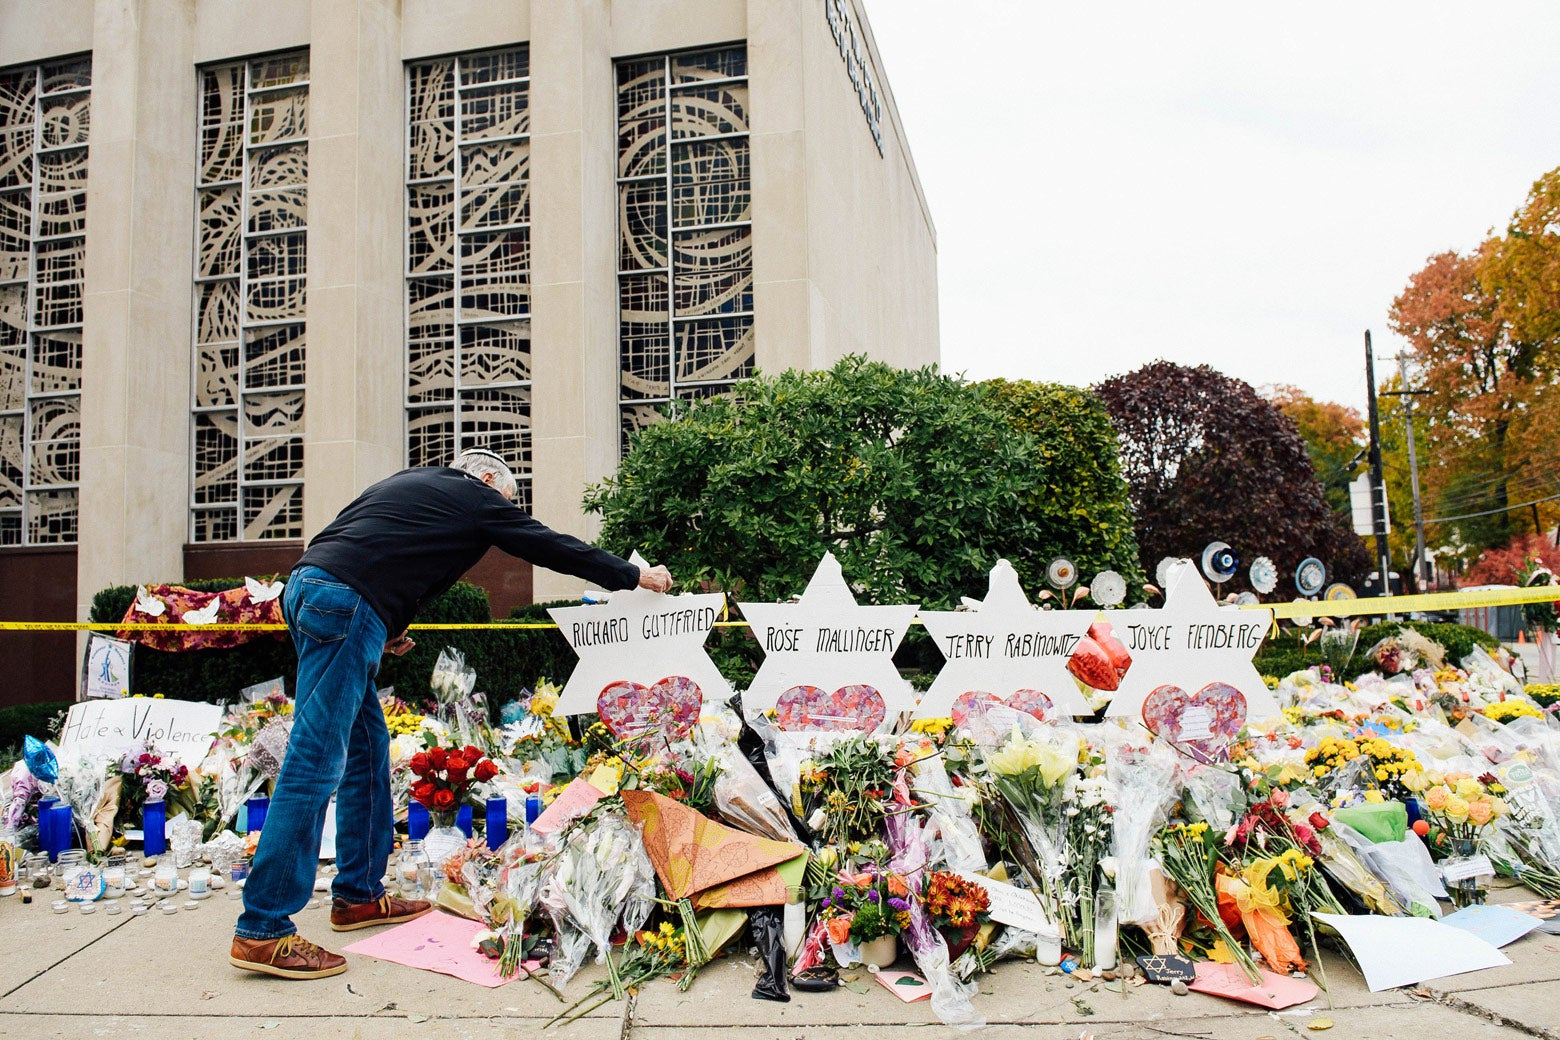 A man adjusts a marker for a shooting victim at the memorial outside Tree of Life synagogue. The memorial is full of flowers.